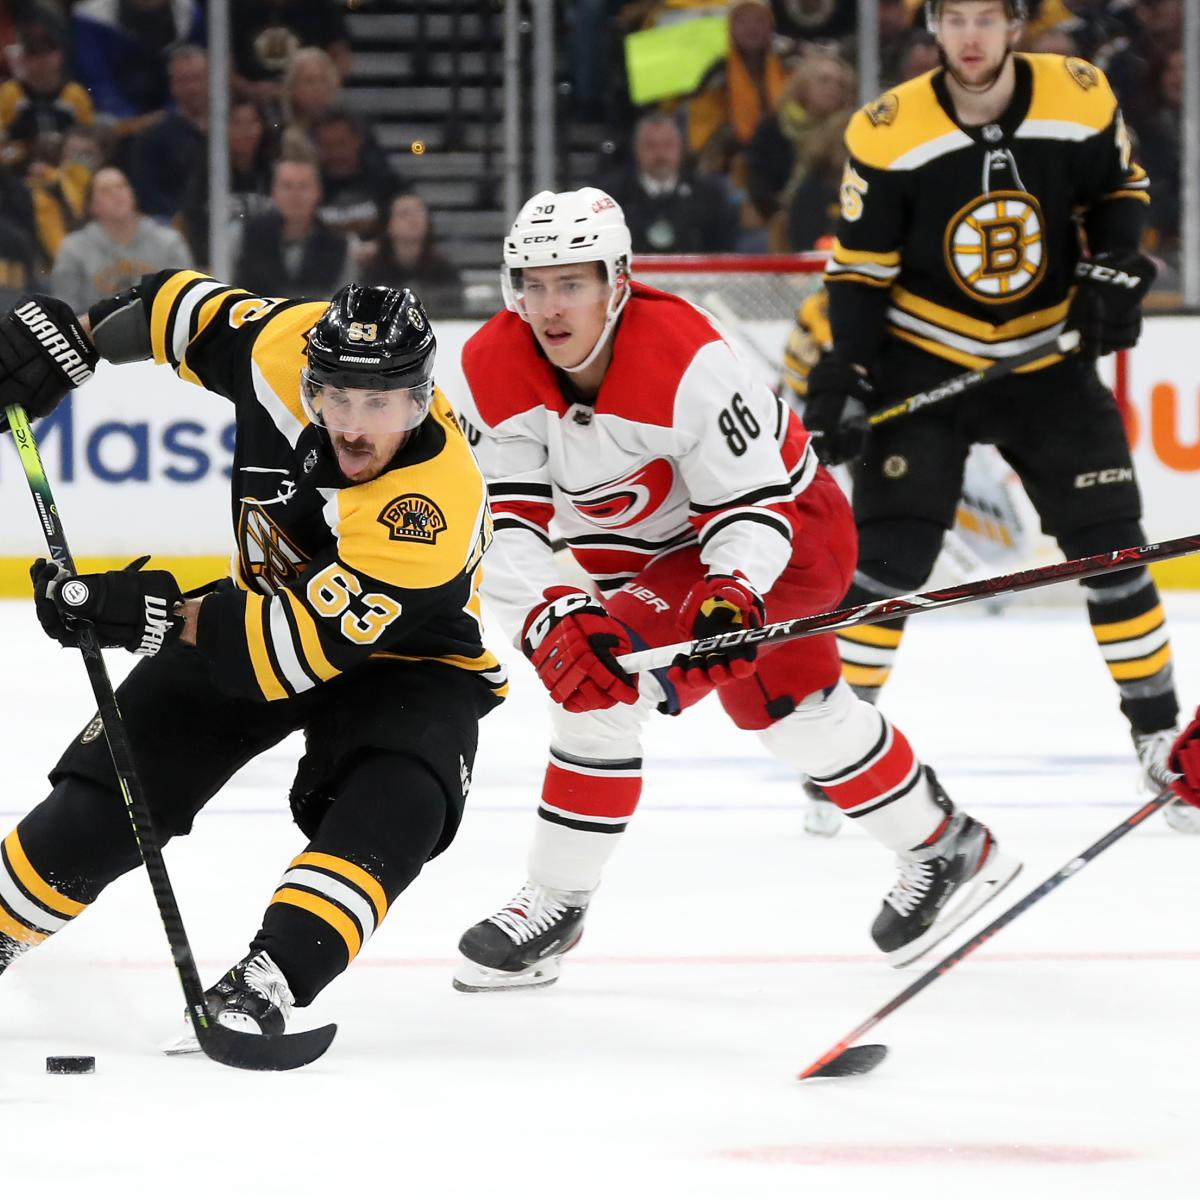 NHL Playoff Bracket 2019: TV Schedule, Predictions For